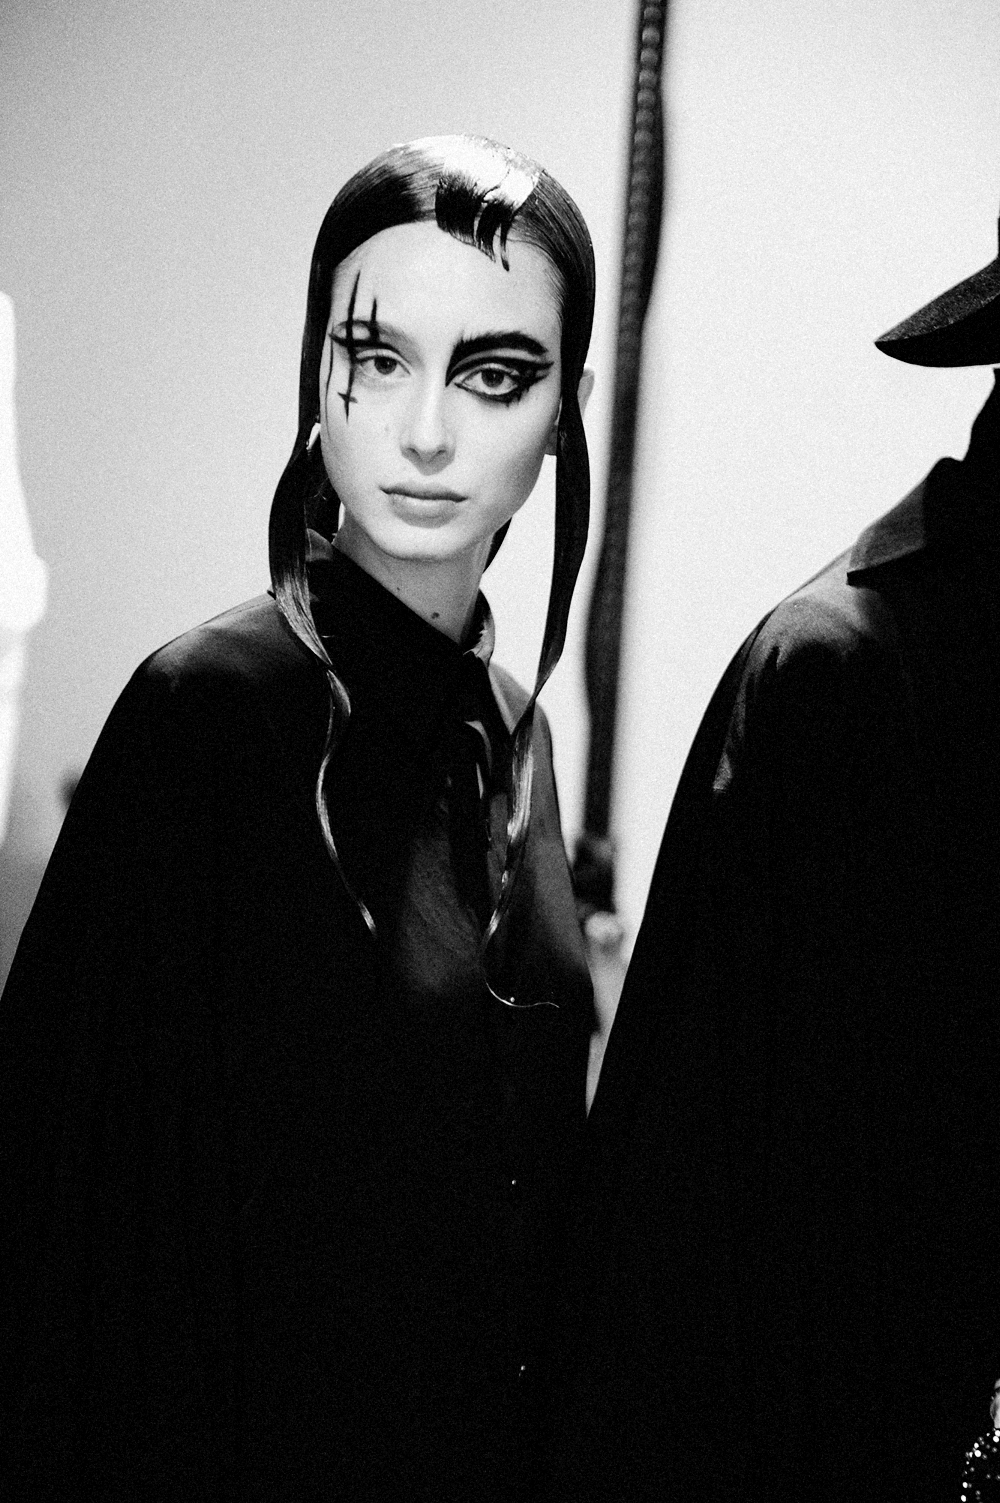 BACKSTAGE AT YOHJI YAMAMOTO FALL-WINTER 2015 PARIS